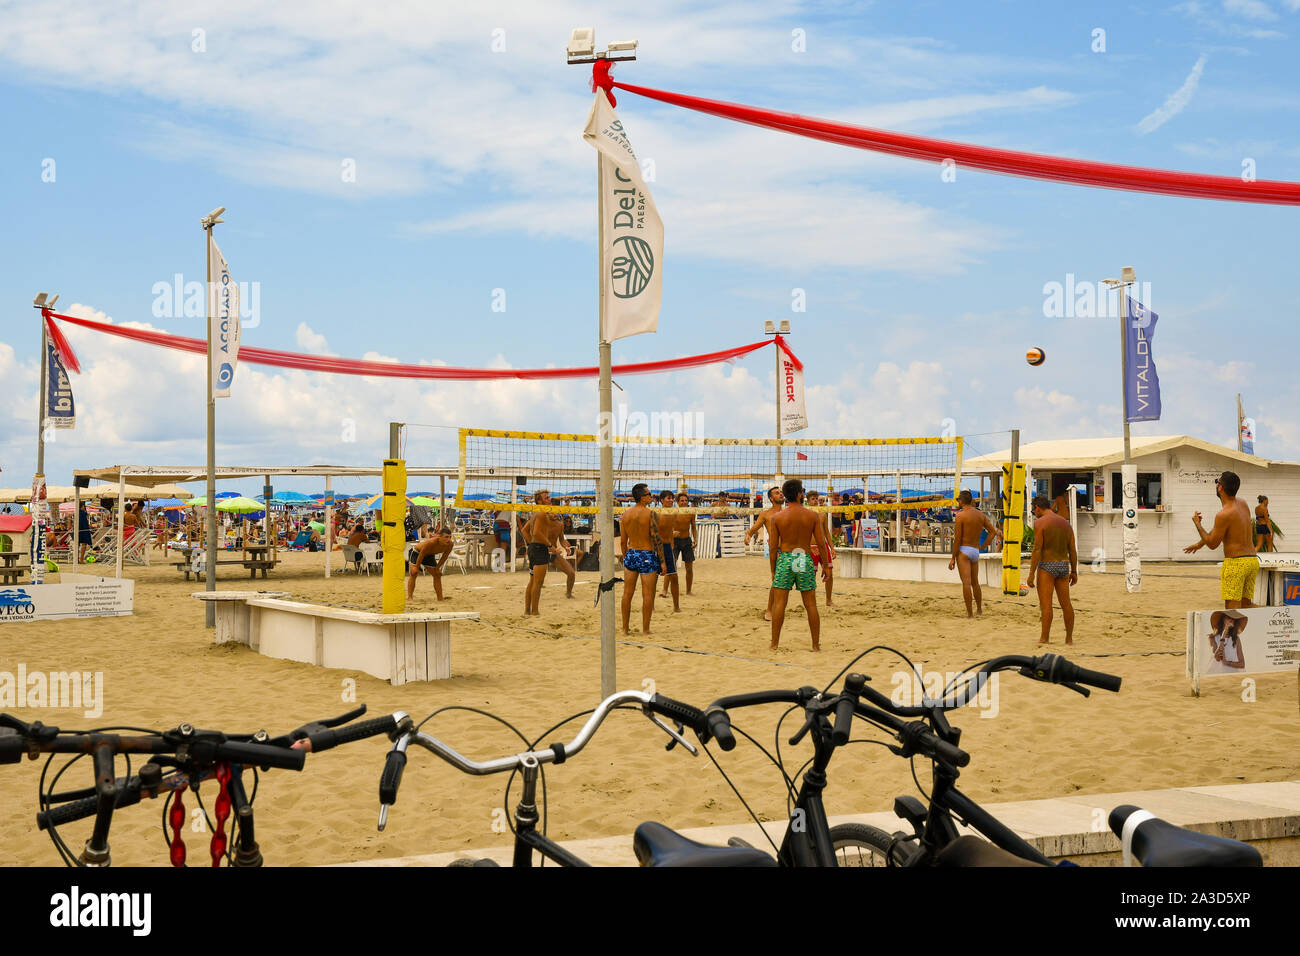 Young men playing beach volleyball on the sandy beach of Lido di Camaiore in a sunny mid-August day with parked bicycles, Versilia, Tuscany, Italy Stock Photo